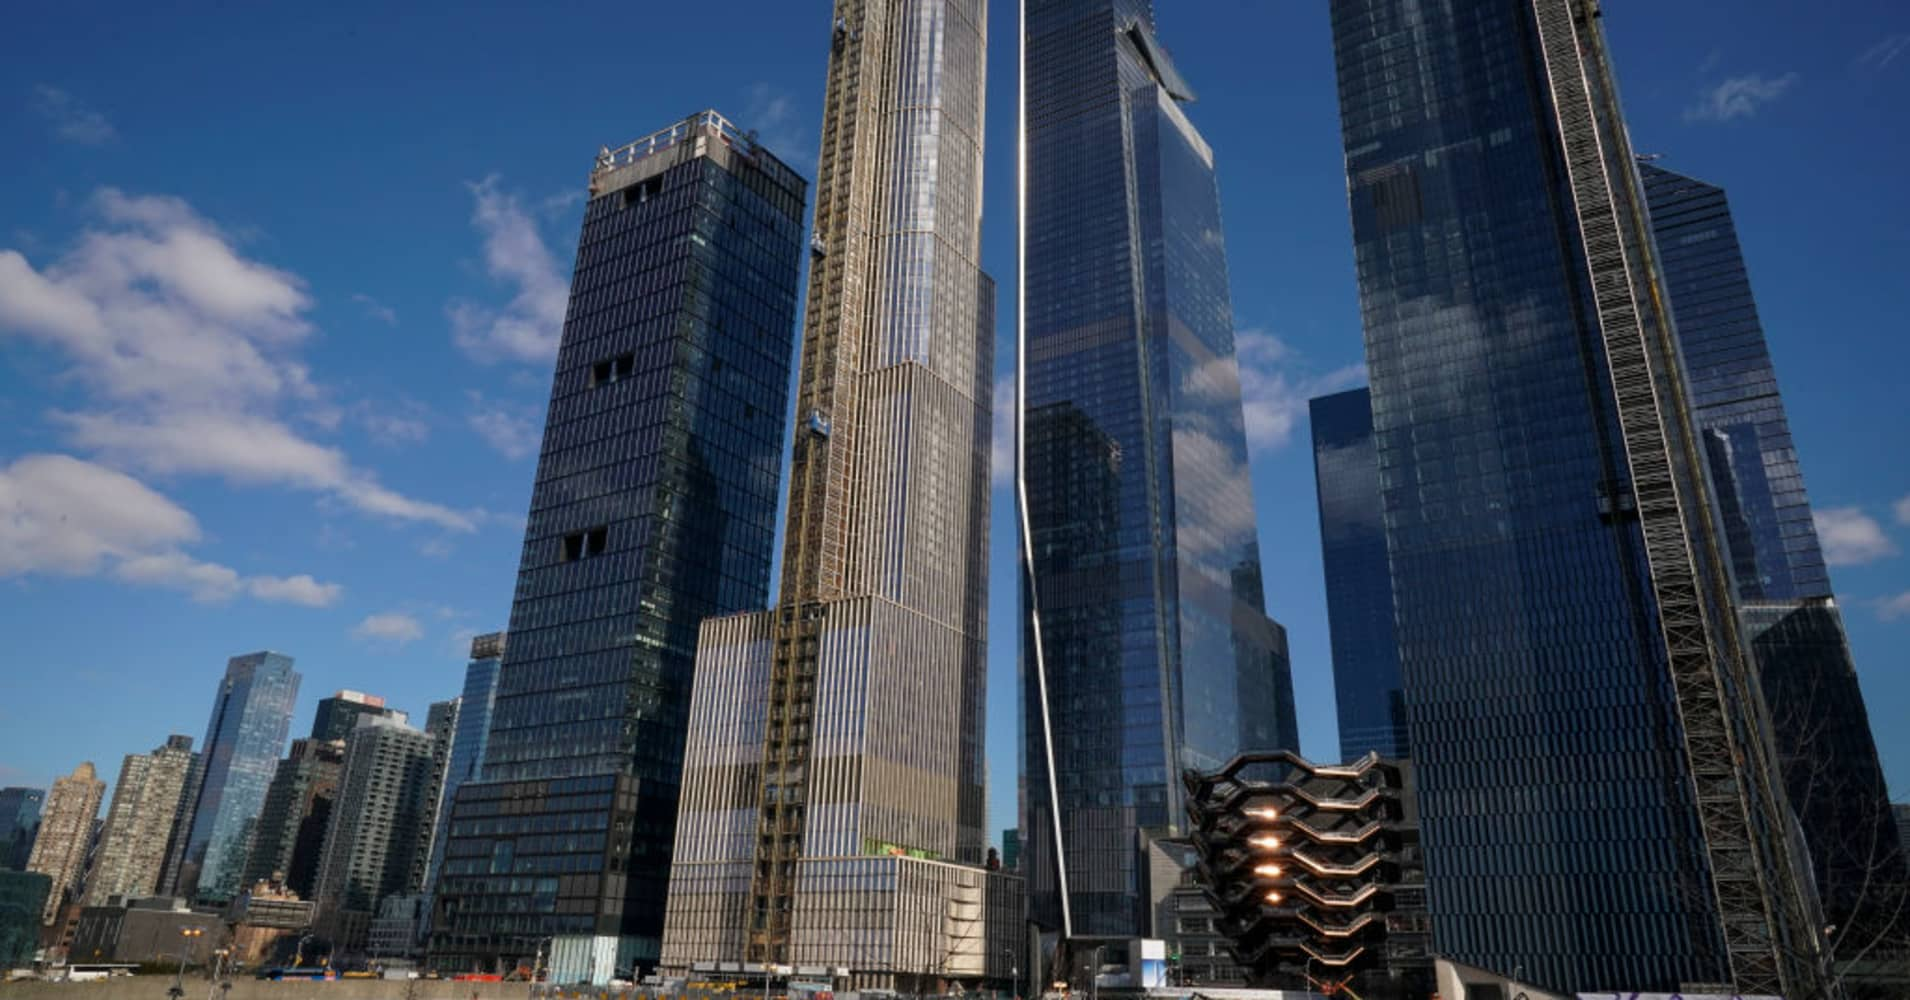 Hudson Yards may be the moment of truth for how online brands compete in the real world